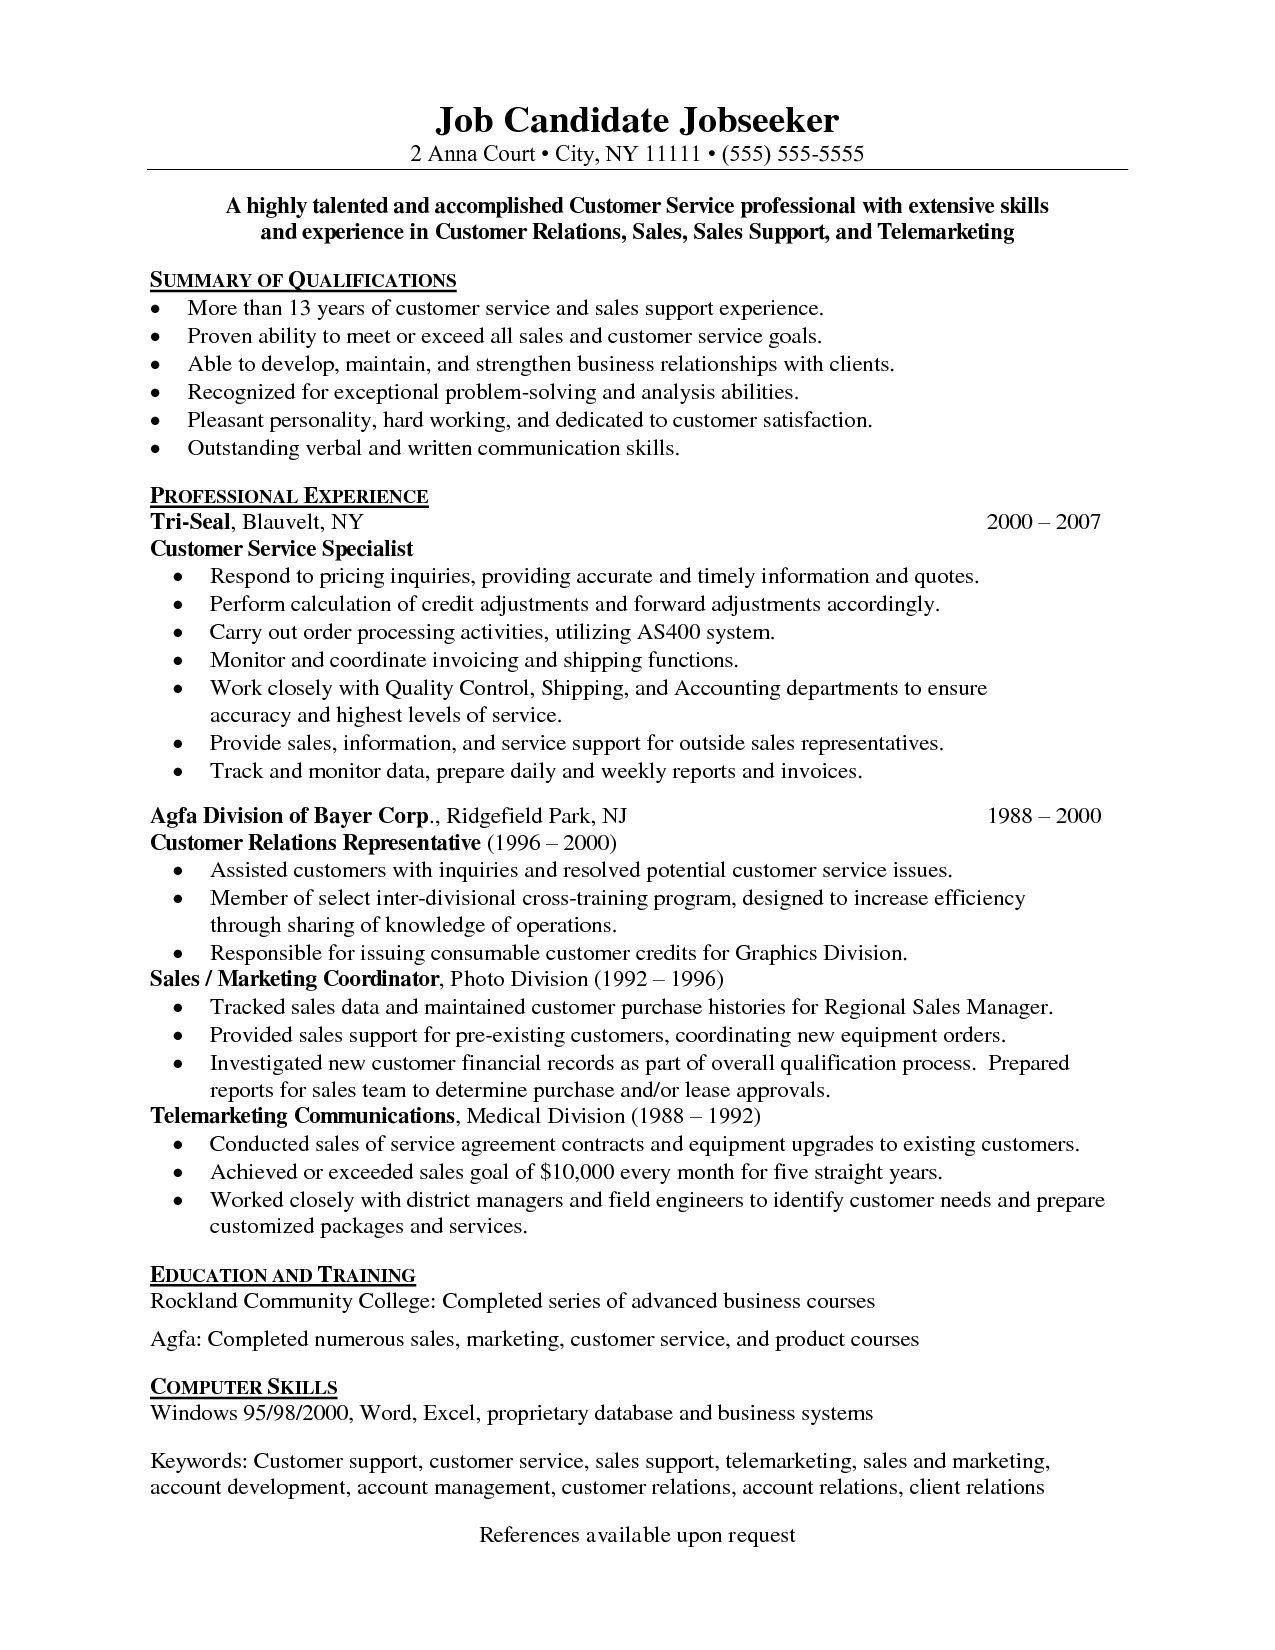 32 Lovely Resume Objective For Customer Service In 2020 Customer Service Resume Examples Resume Skills Resume Examples